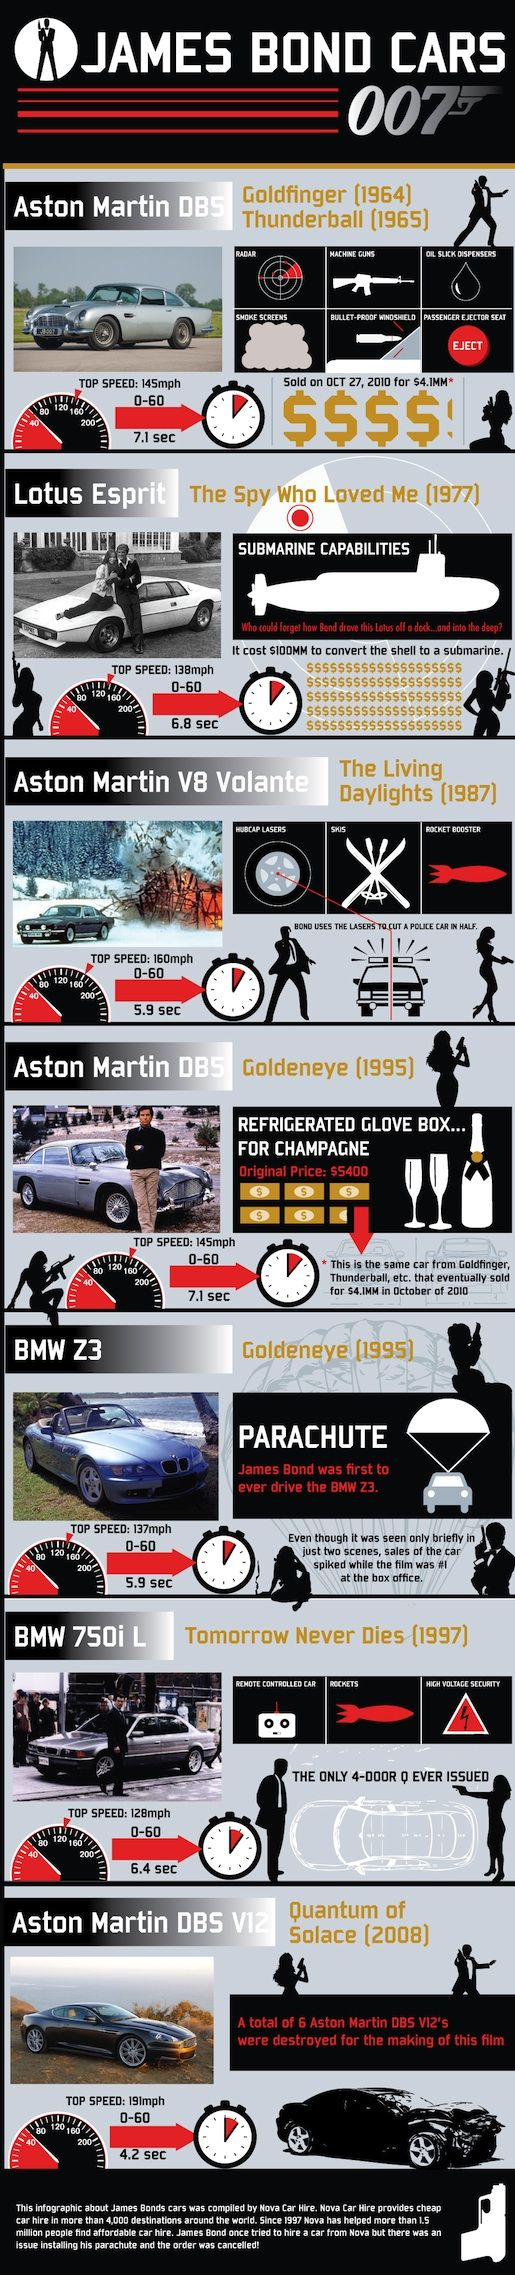 The Cars of James Bond . . . the 'best of breed', Aston Martin DBS V12!